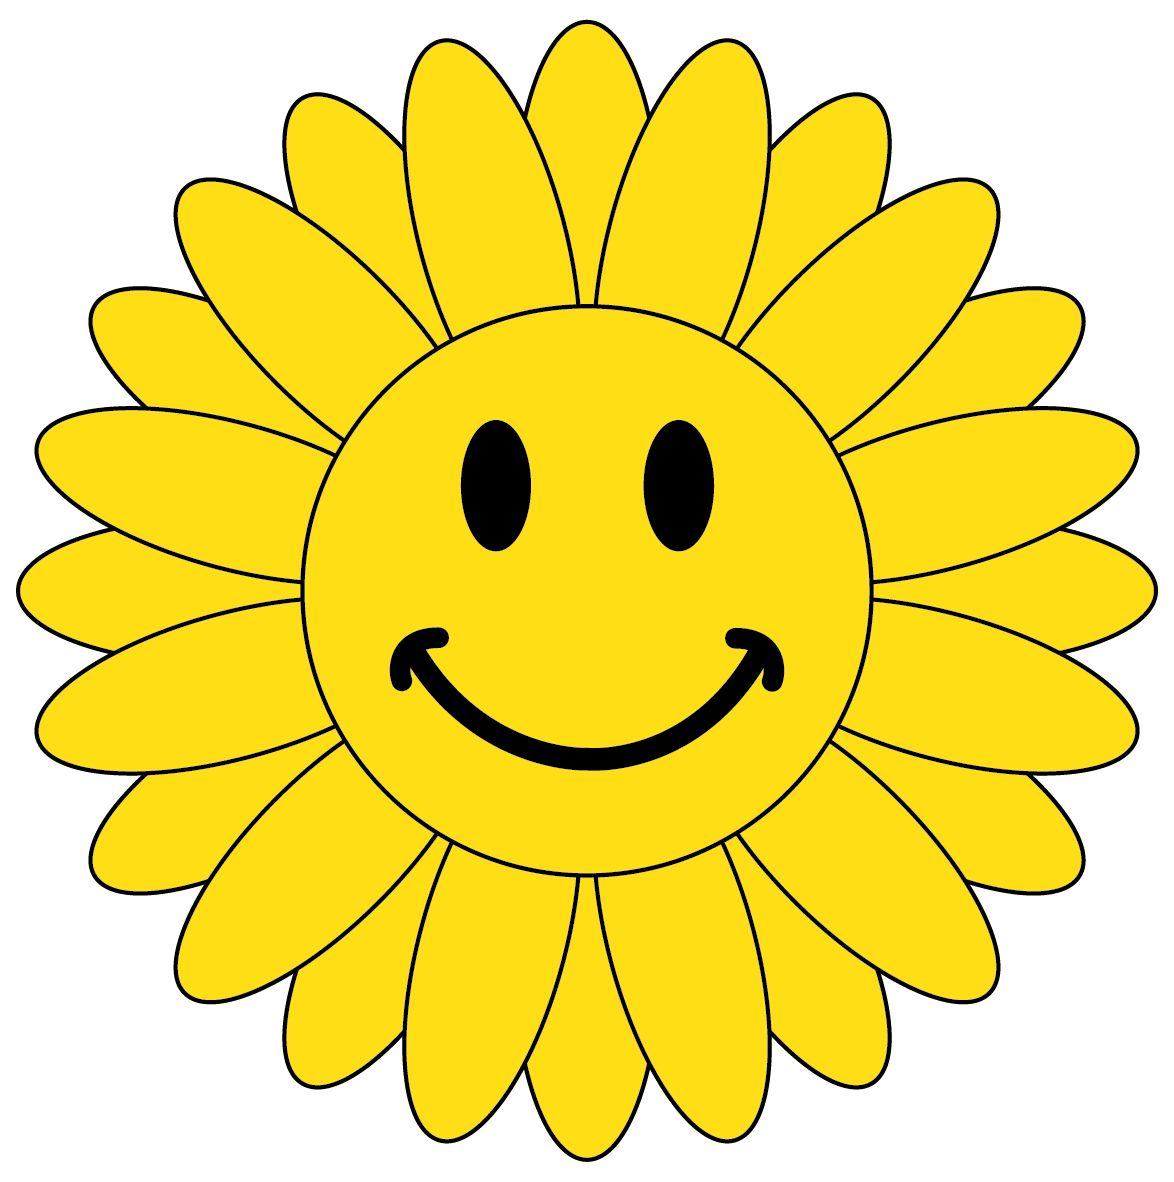 Moving Smiley Faces Clip Art Animated Smiley Face Clip